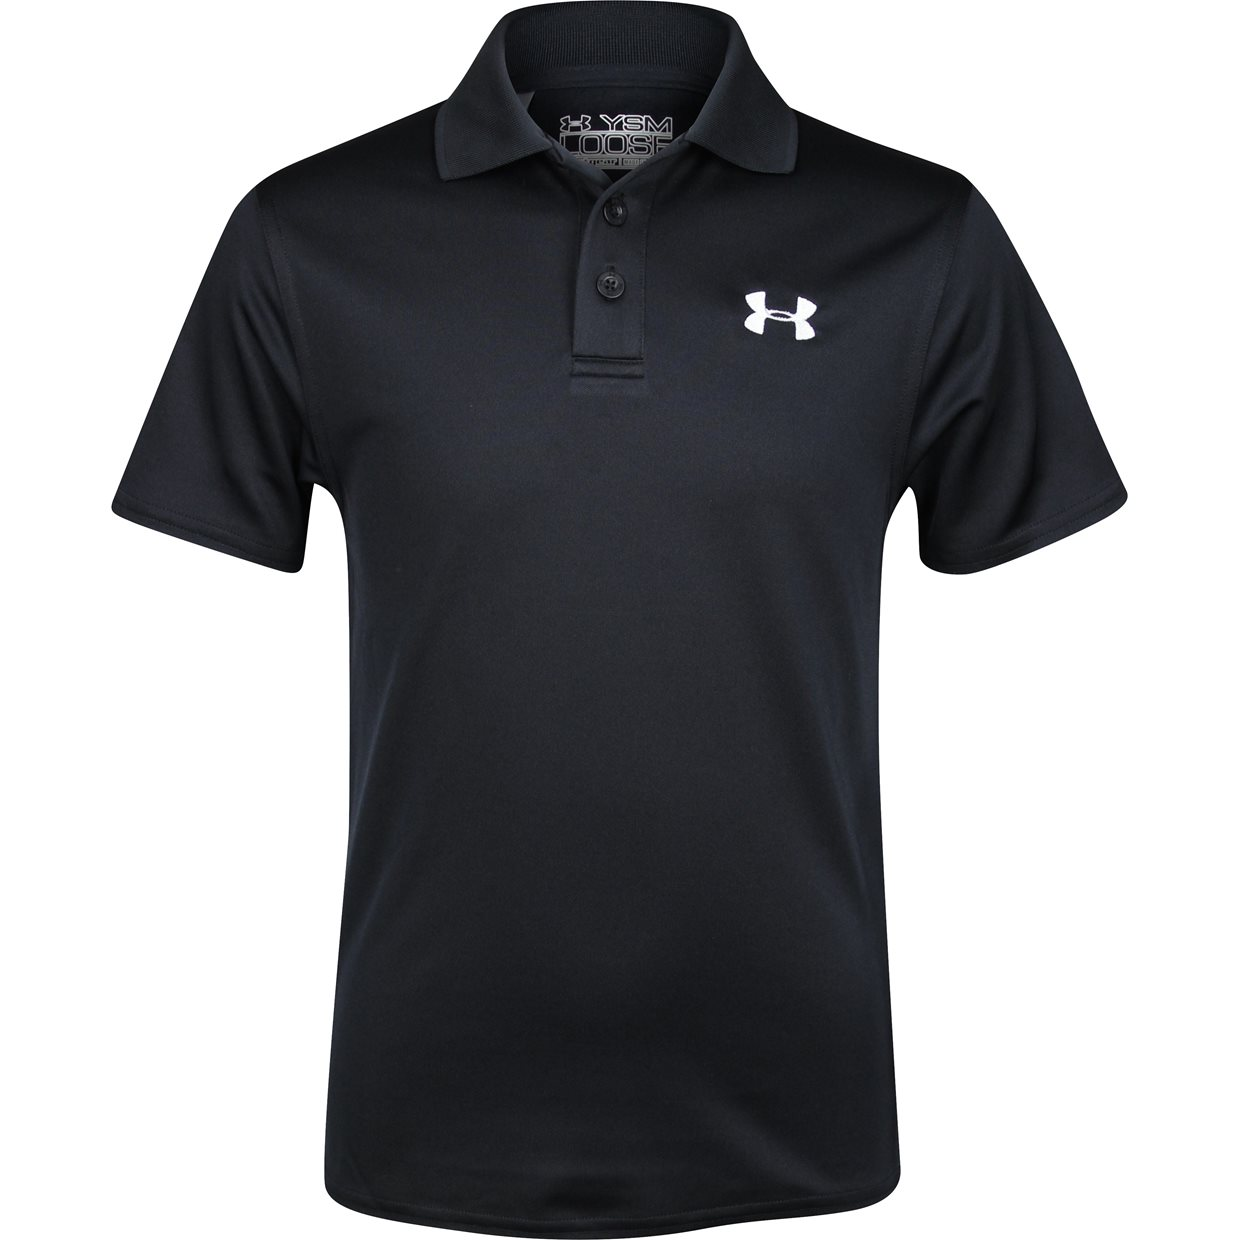 Junior under armour ua youth performance shirt apparel at for Youth performance polo shirts